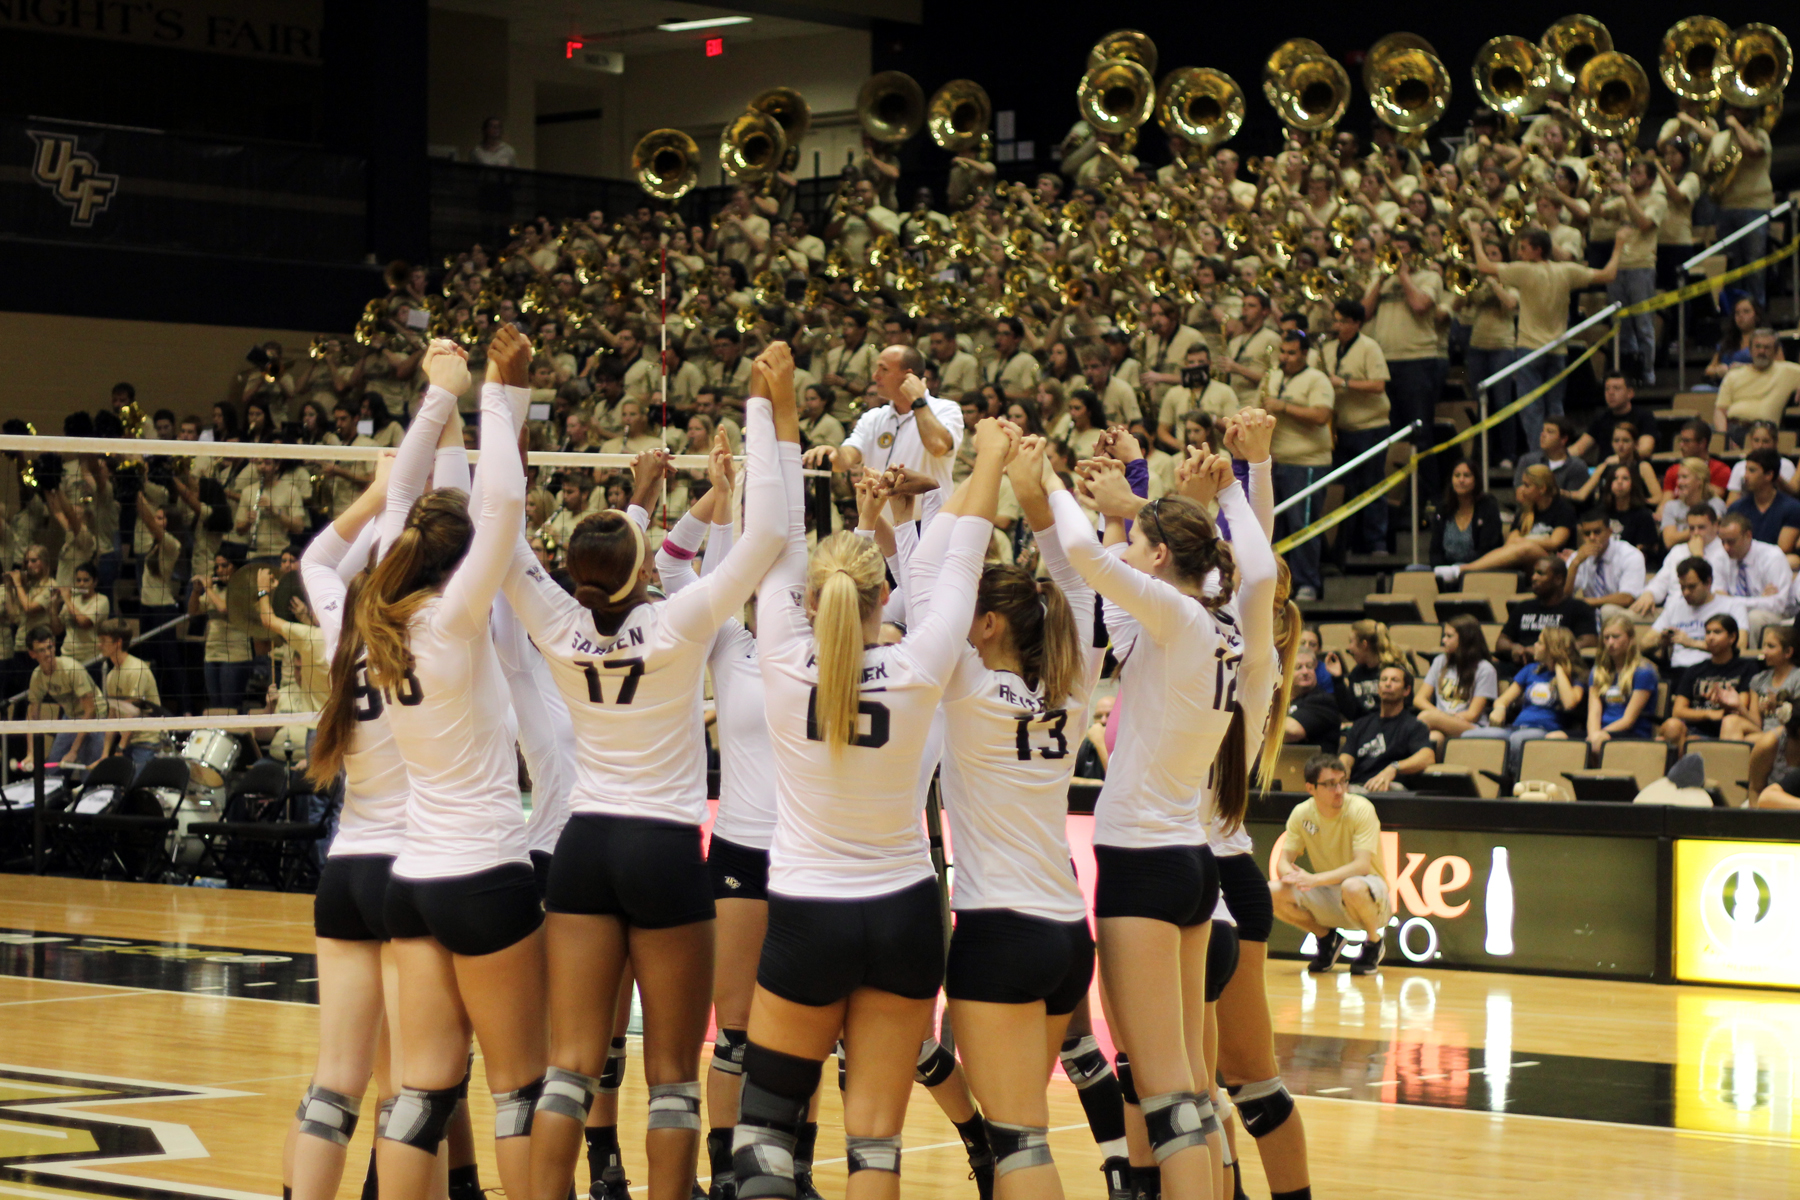 University of Central Florida Volleyball team